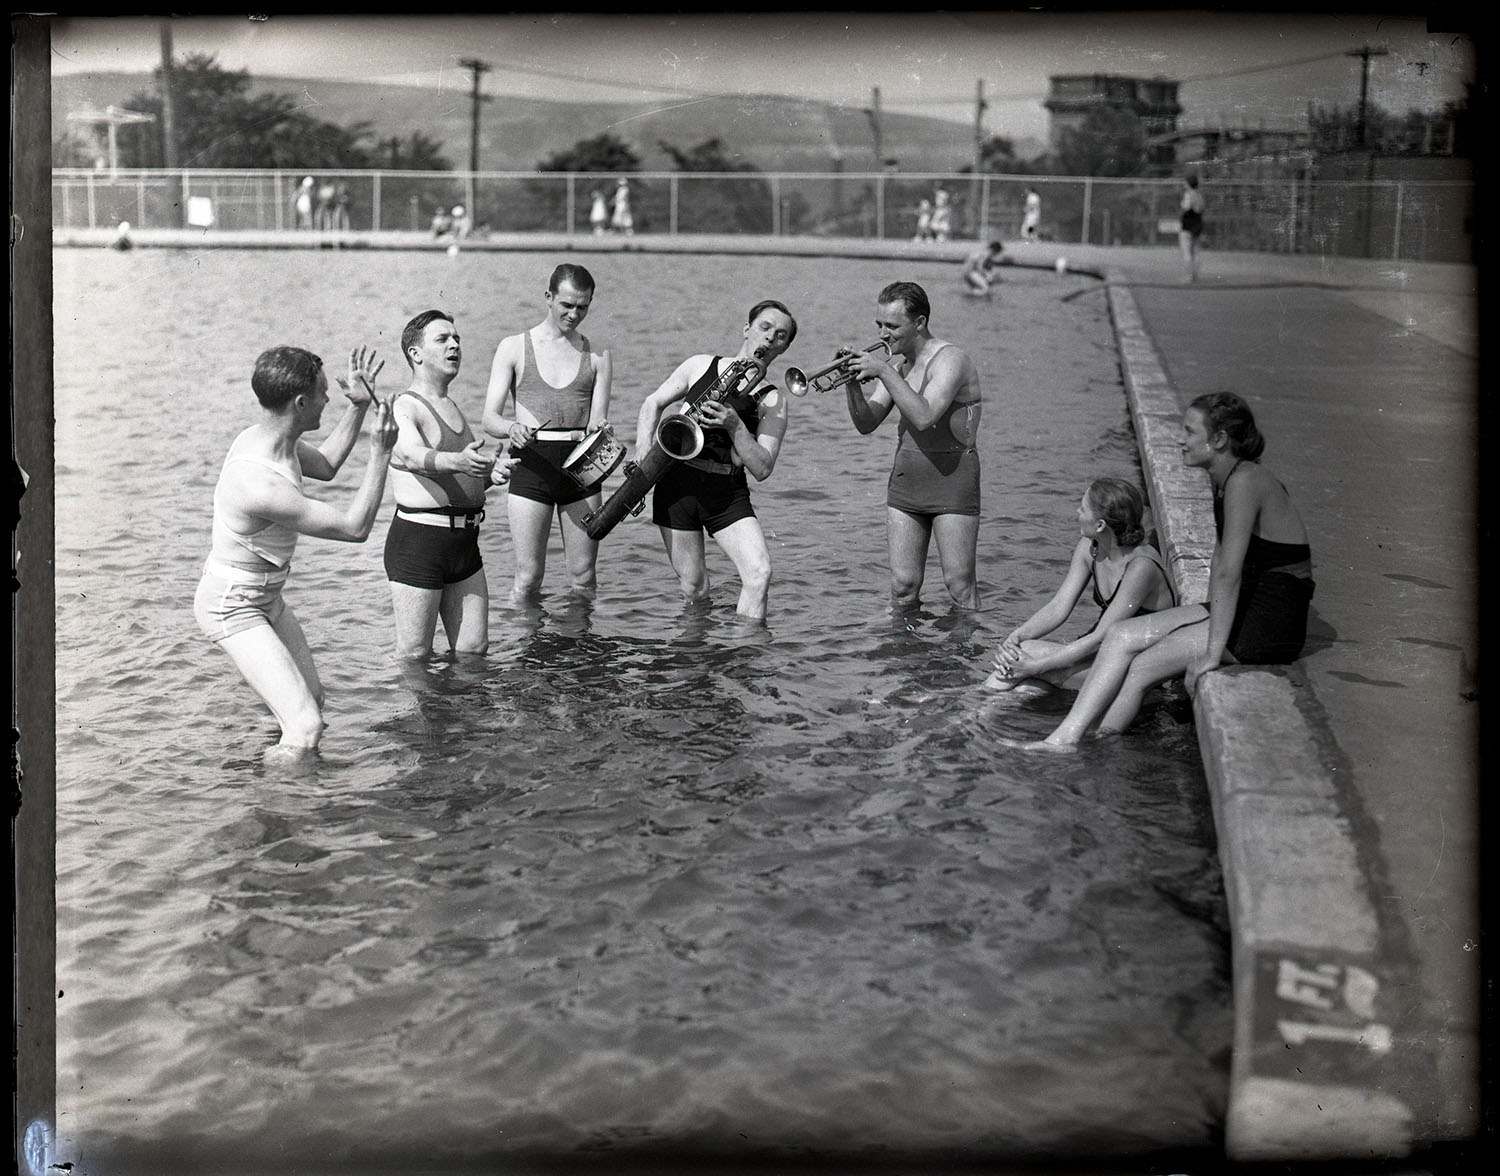 Musicians in the pool, Kennywood Park, 1930s.